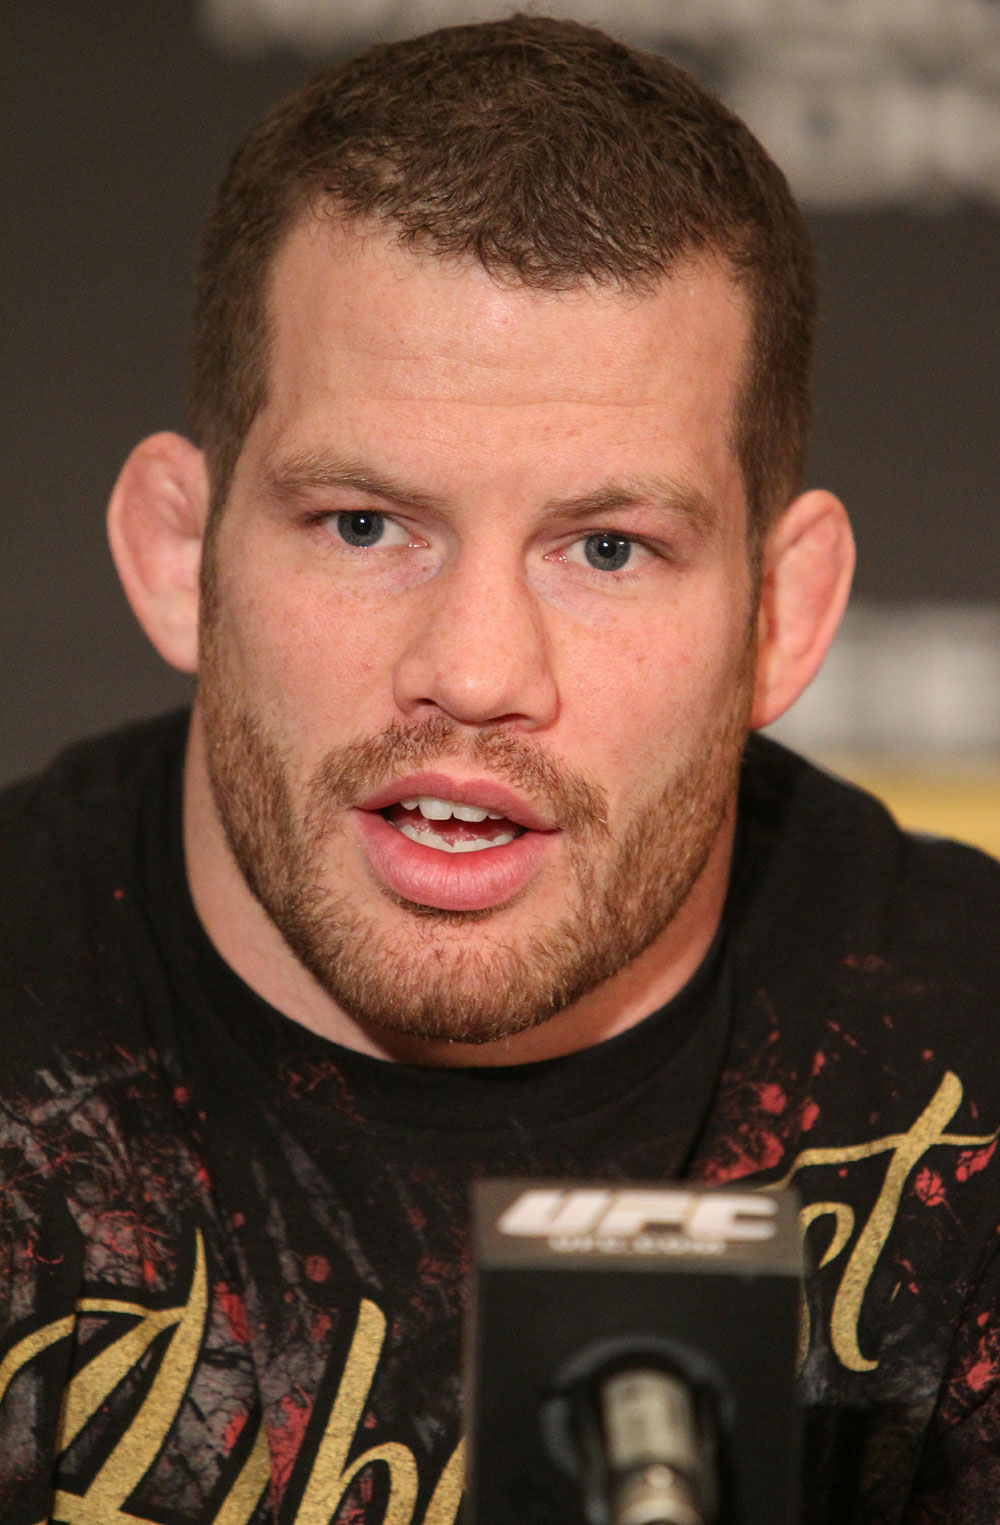 Nate Marquardt speaks at the UFC 122 pre-fight press conference at the Hilton Hotel on November 11,  2010 in Dusseldorf, Germany.  (Photo by Josh Hedges/Zuffa LLC/Zuffa LLC via Getty Images)